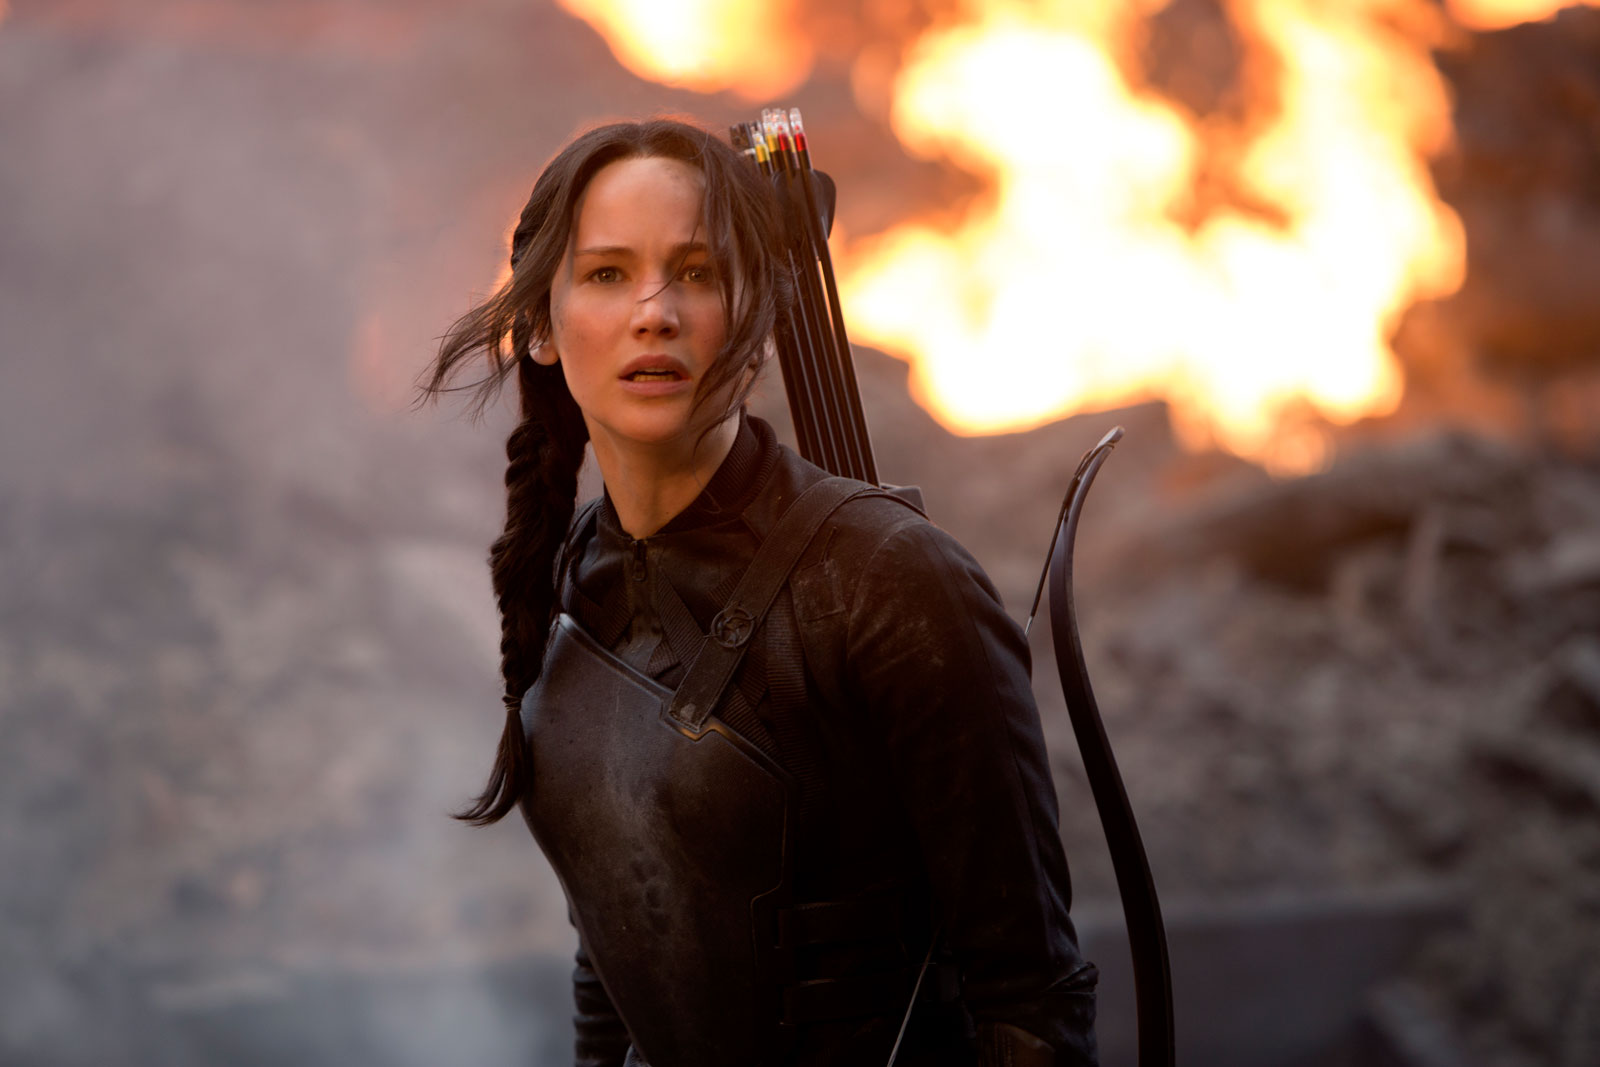 Dove sono stati girati film Hunger Games